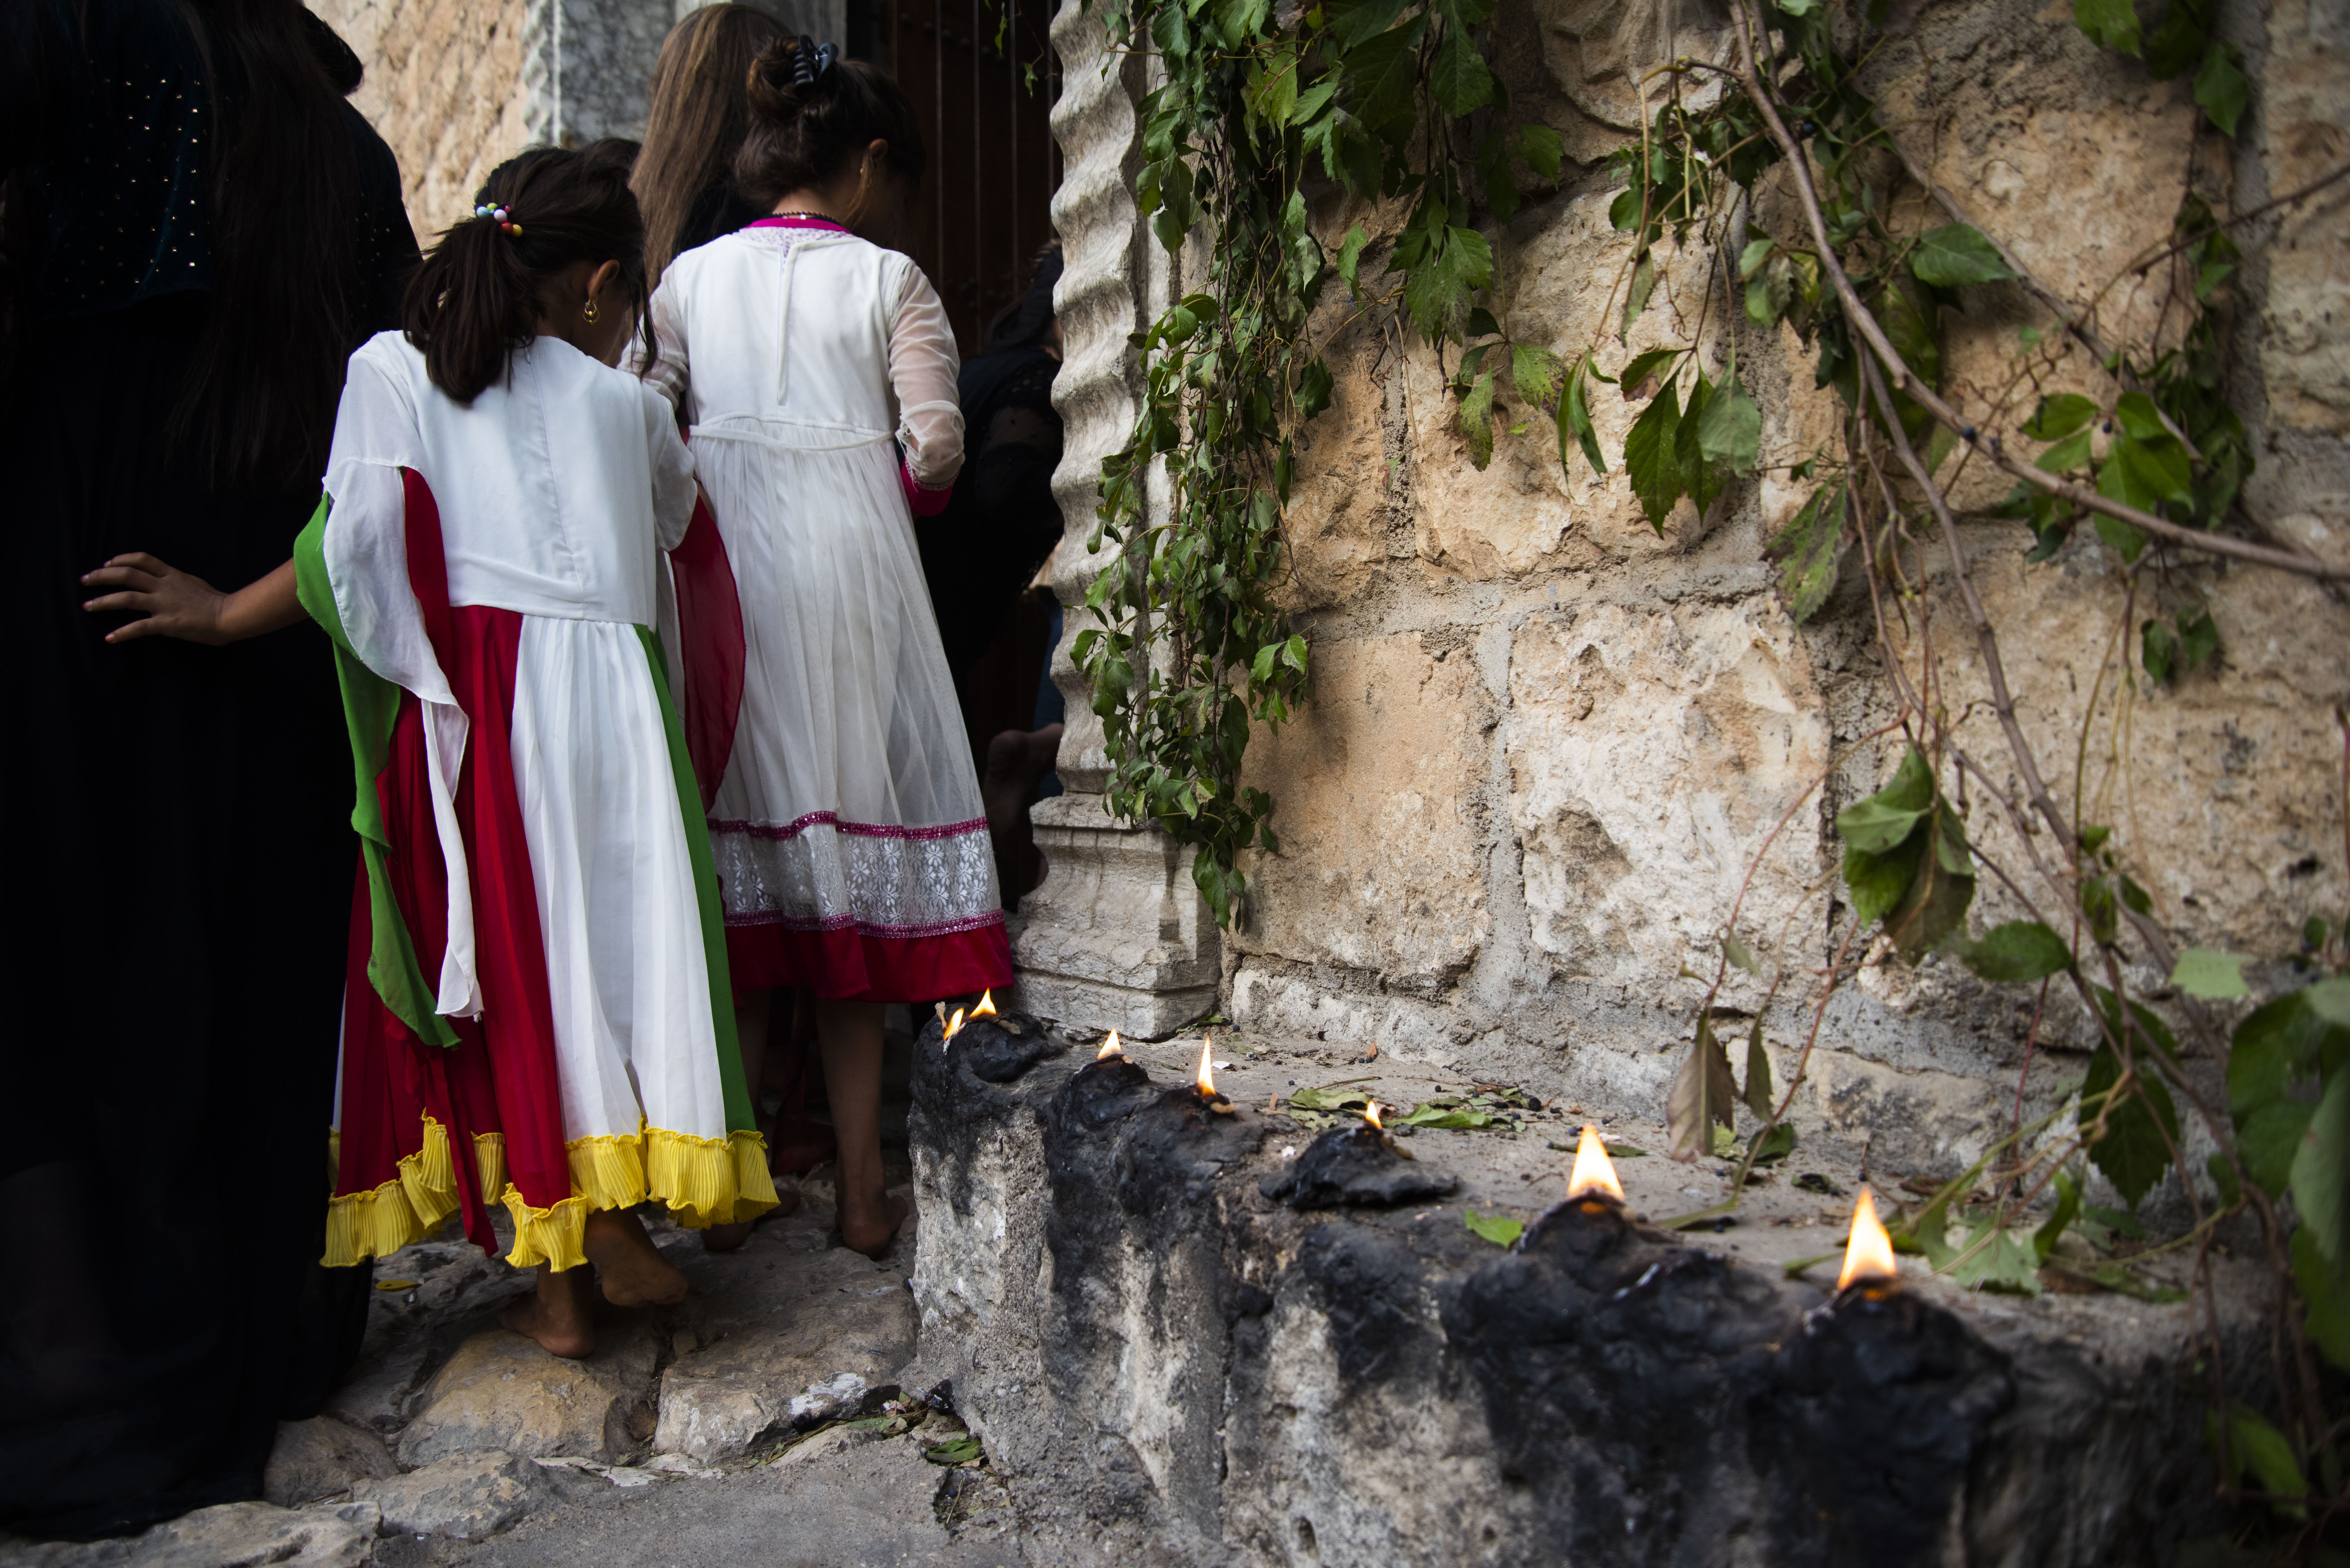 Young Yazidi girls in Lalish, the holiest site for the Yazidi community by photojournalist and docum